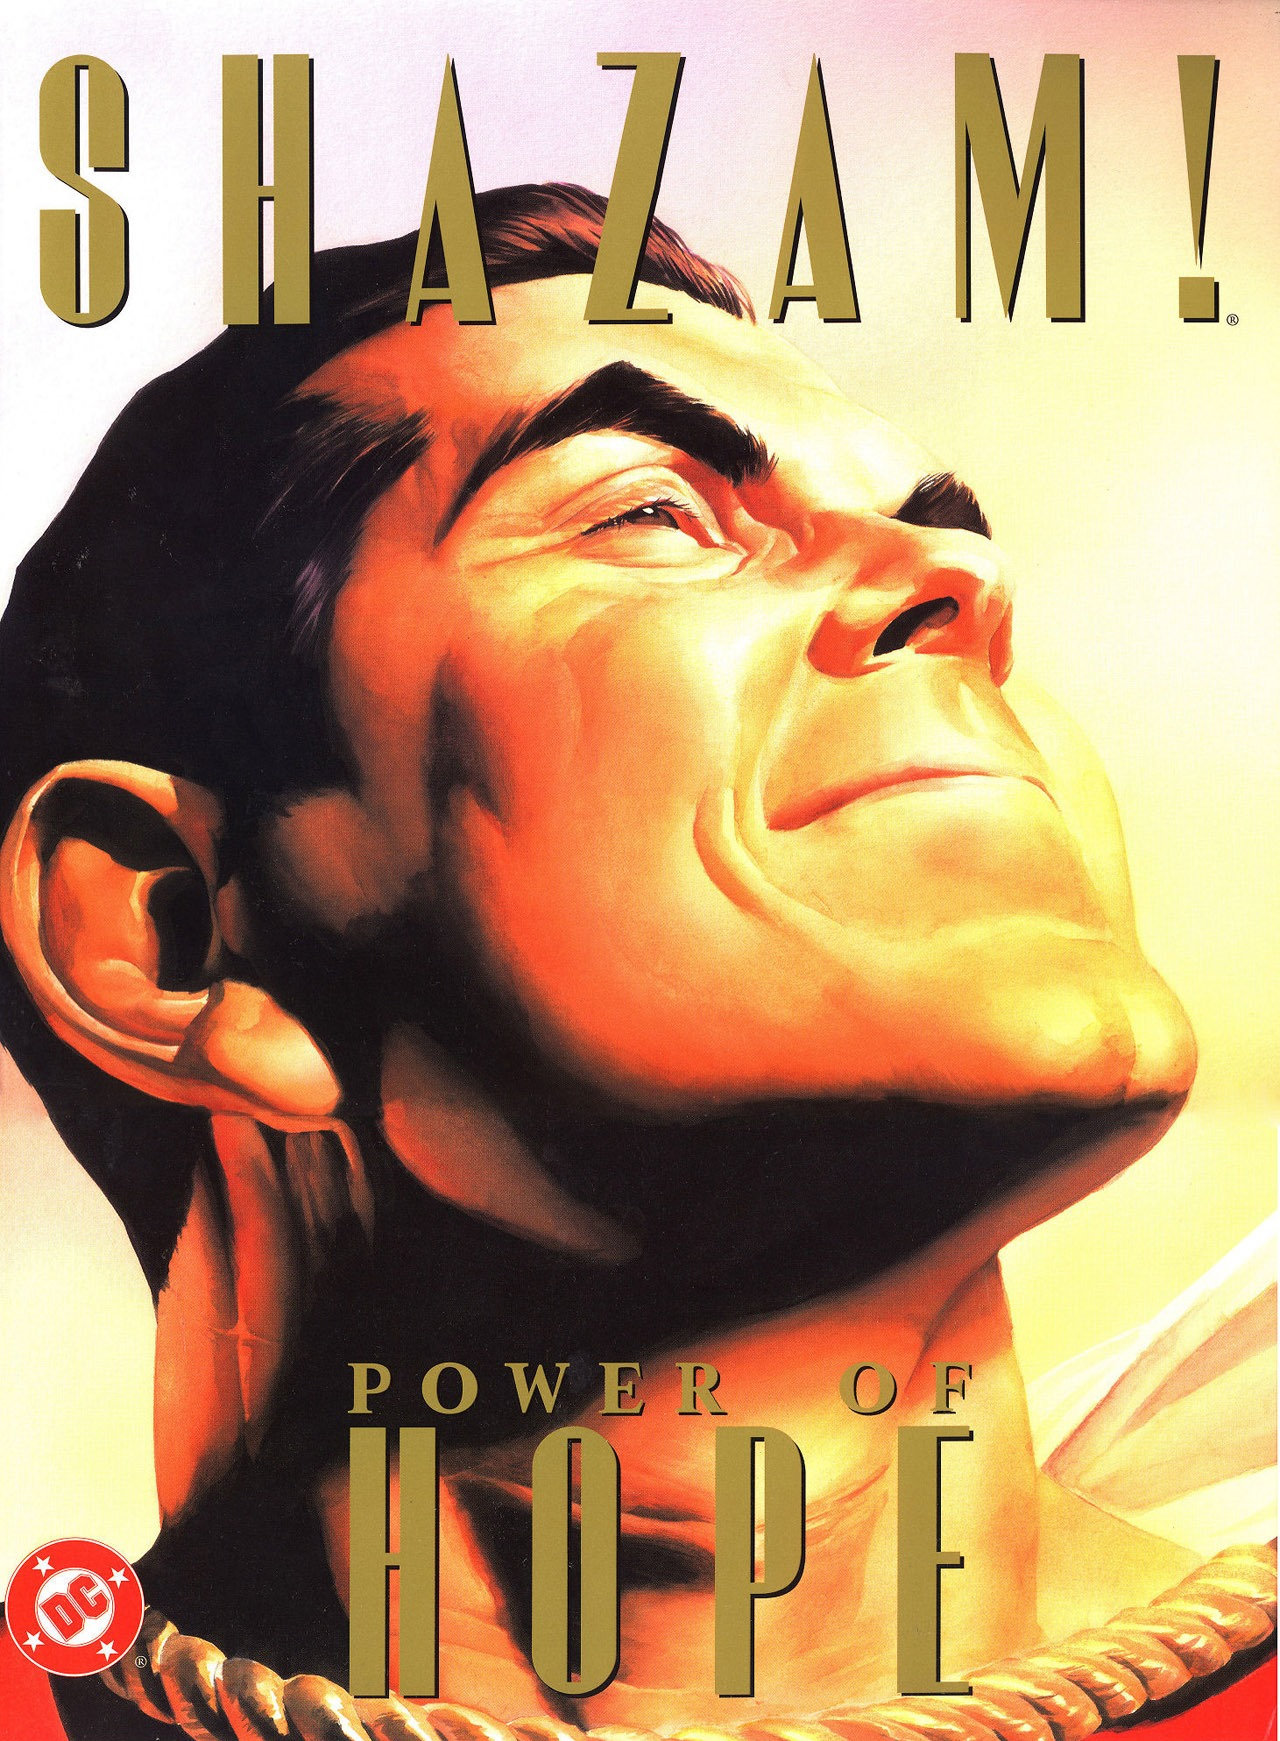 Shazam: Power of Hope (2000) #1, cover by Alex Ross.